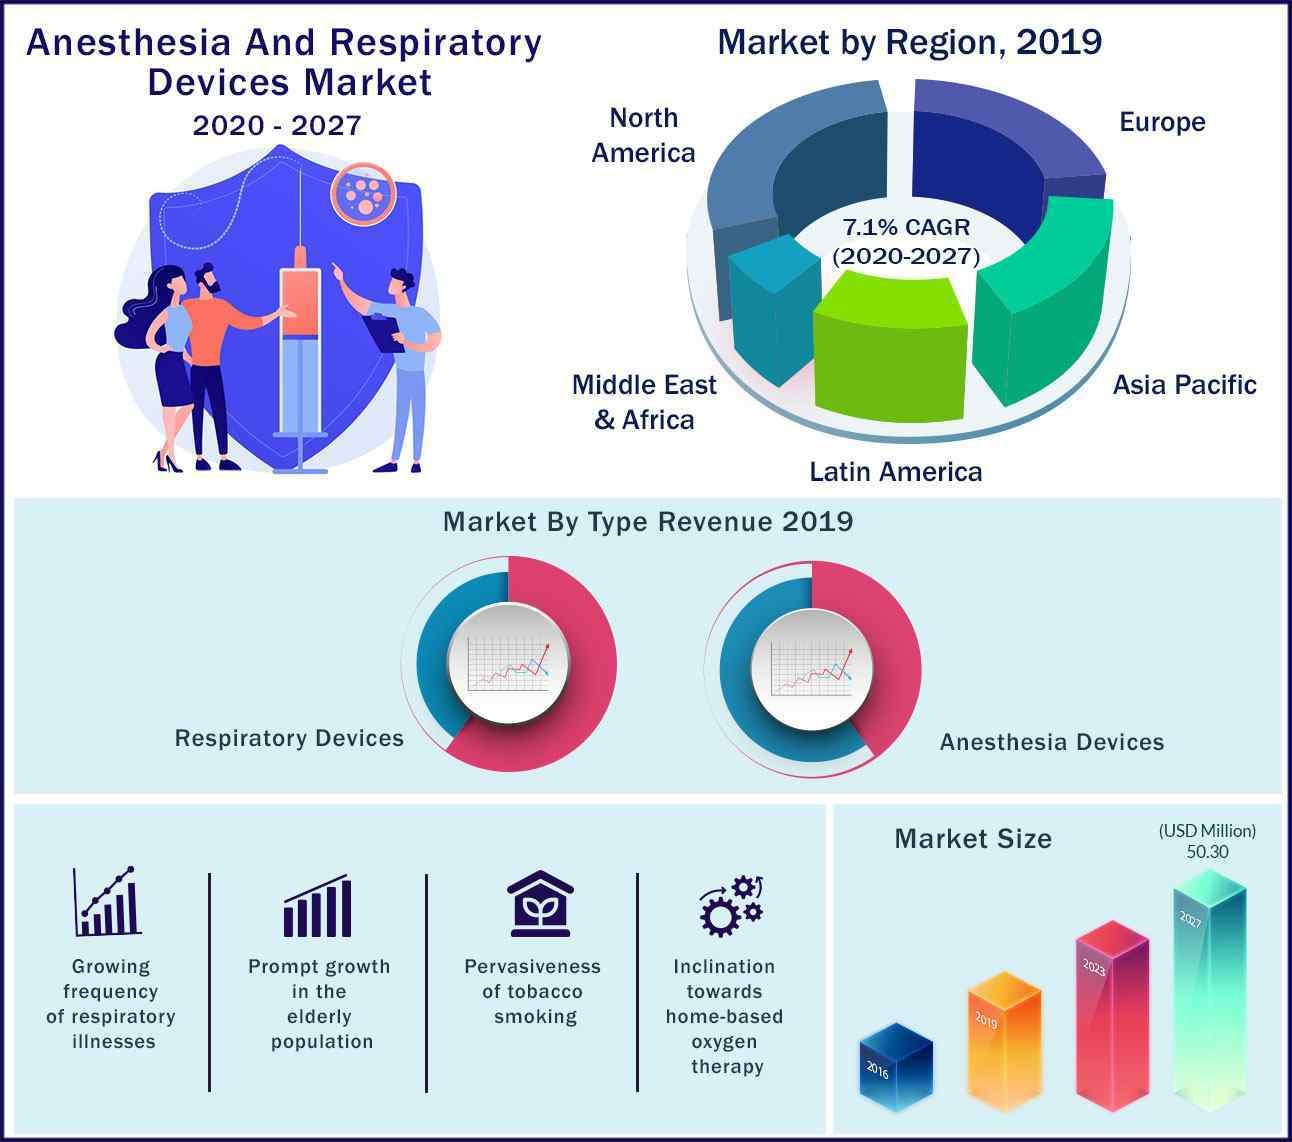 Global Anesthesia and Respiratory Devices Market 2020 to 2027